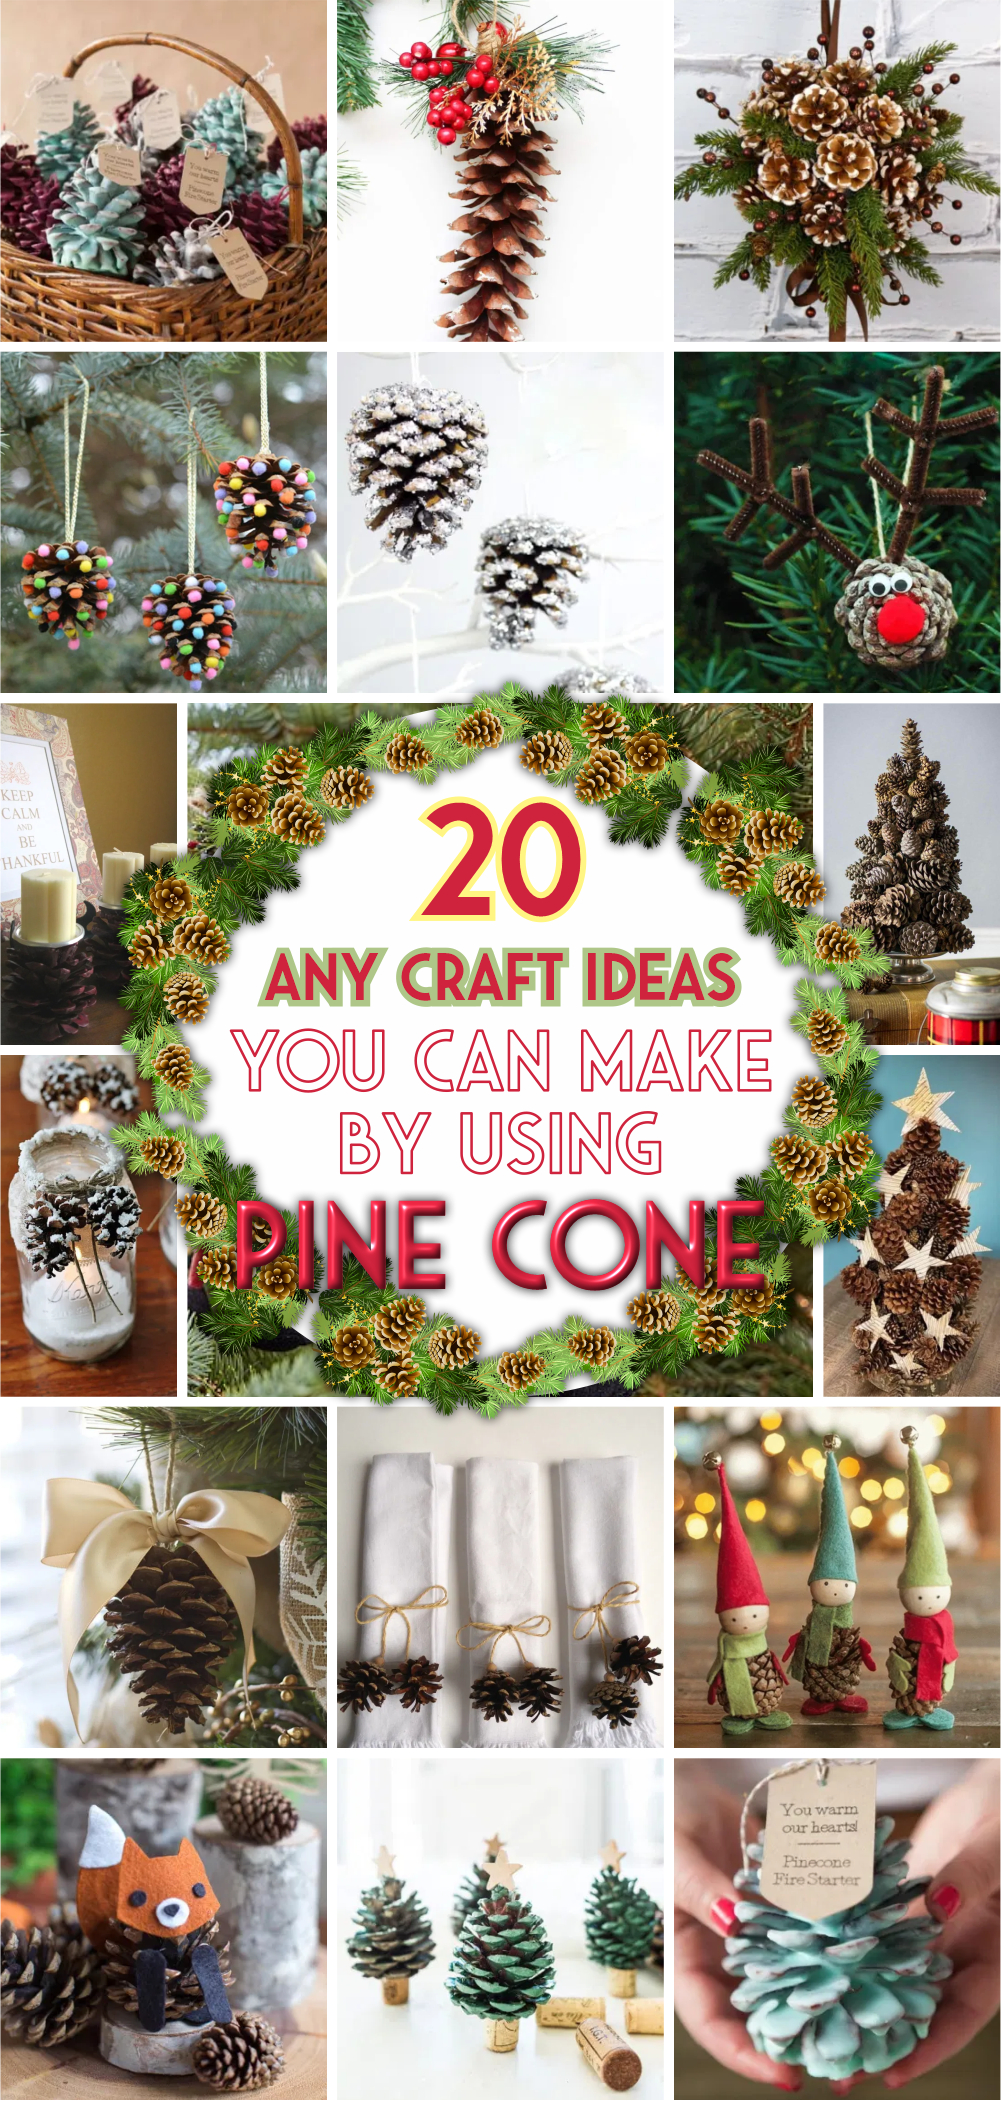 20 any craft ideas you can make by using pine cone 1